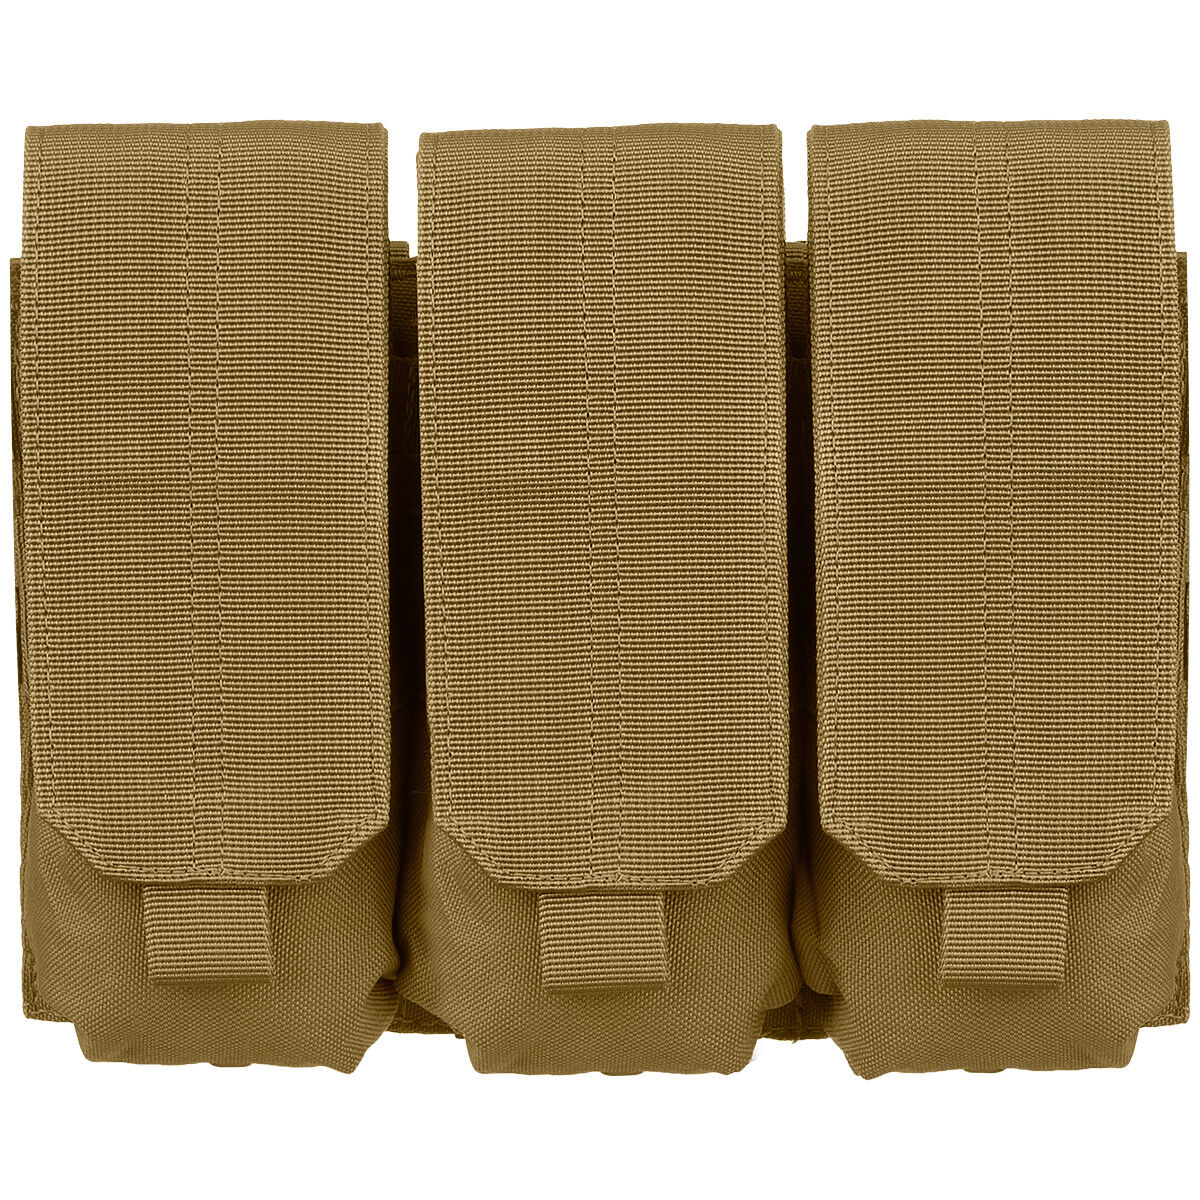 Condor Army Combat Triple Mag Ammo Pouch Tactical MOLLE Case Coyote Brown